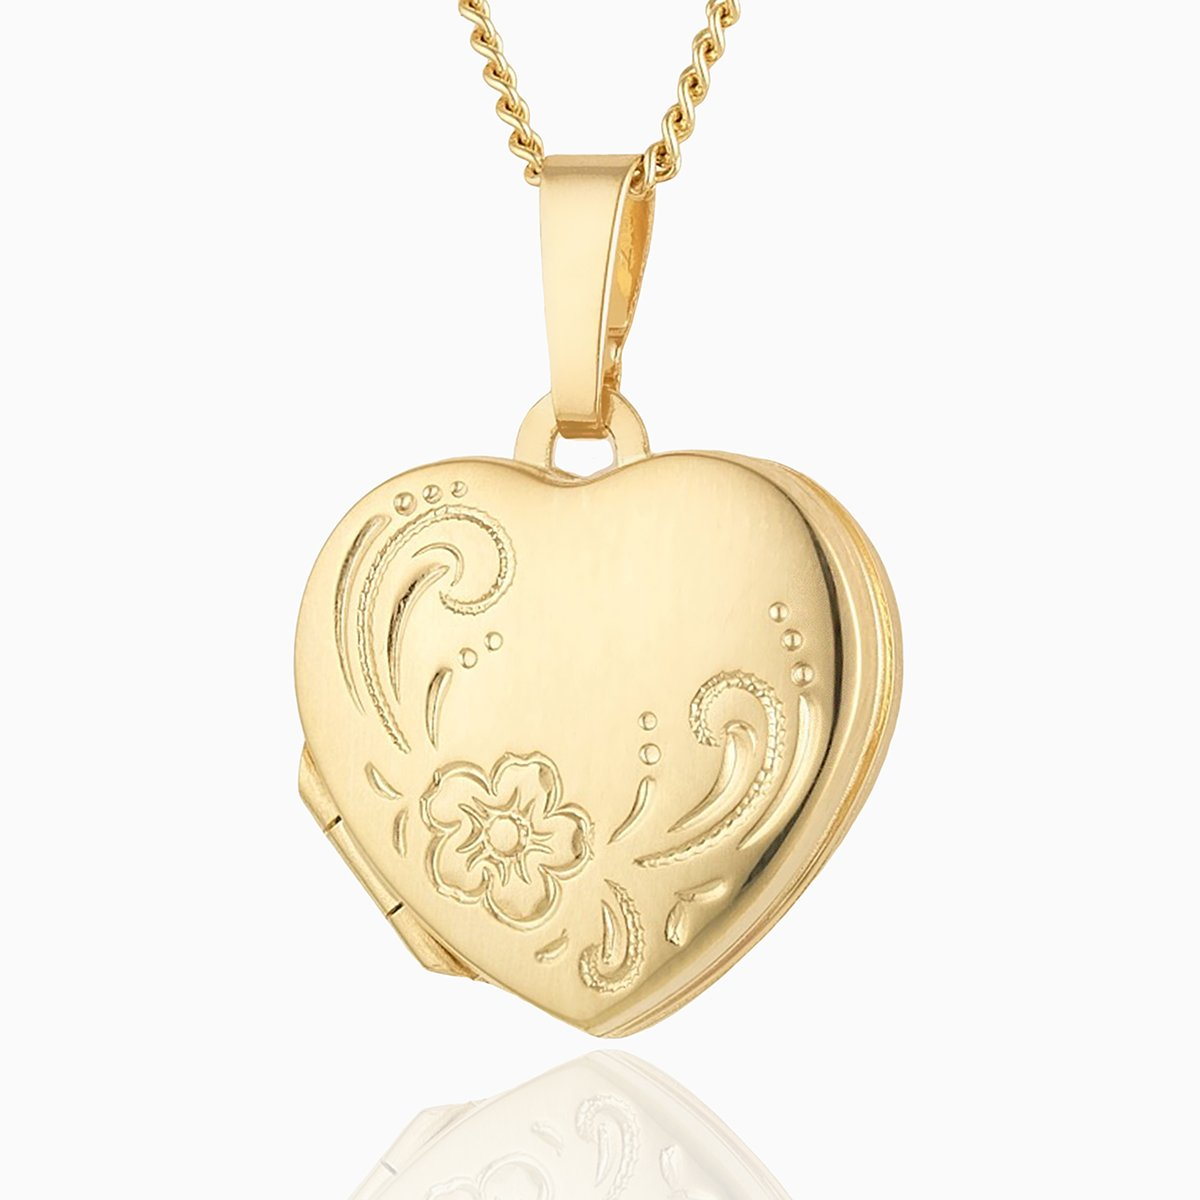 Product title: Petite Gold 4-Photo Heart Locket, product type: Locket